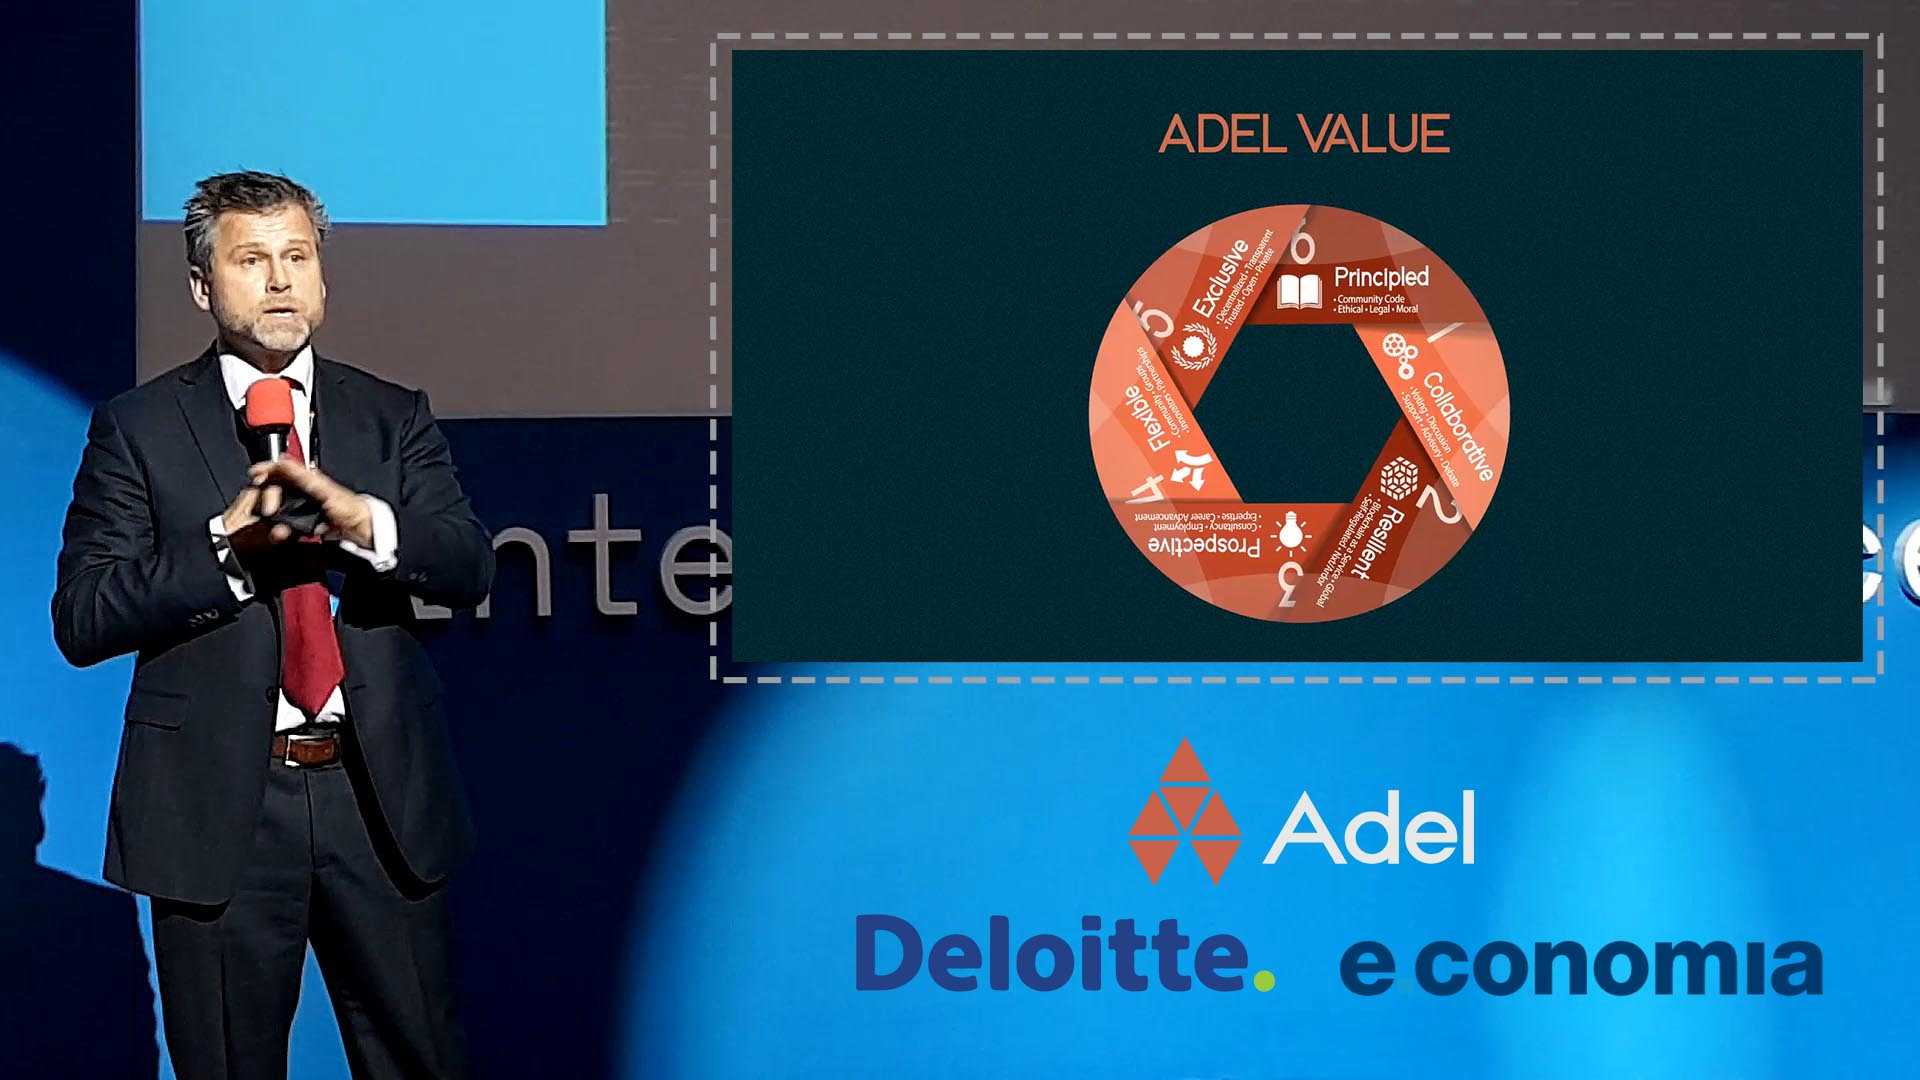 Adel ▲ Conference ▲ A Community Incubator for Blockchain Innovation ▲ e.conomia